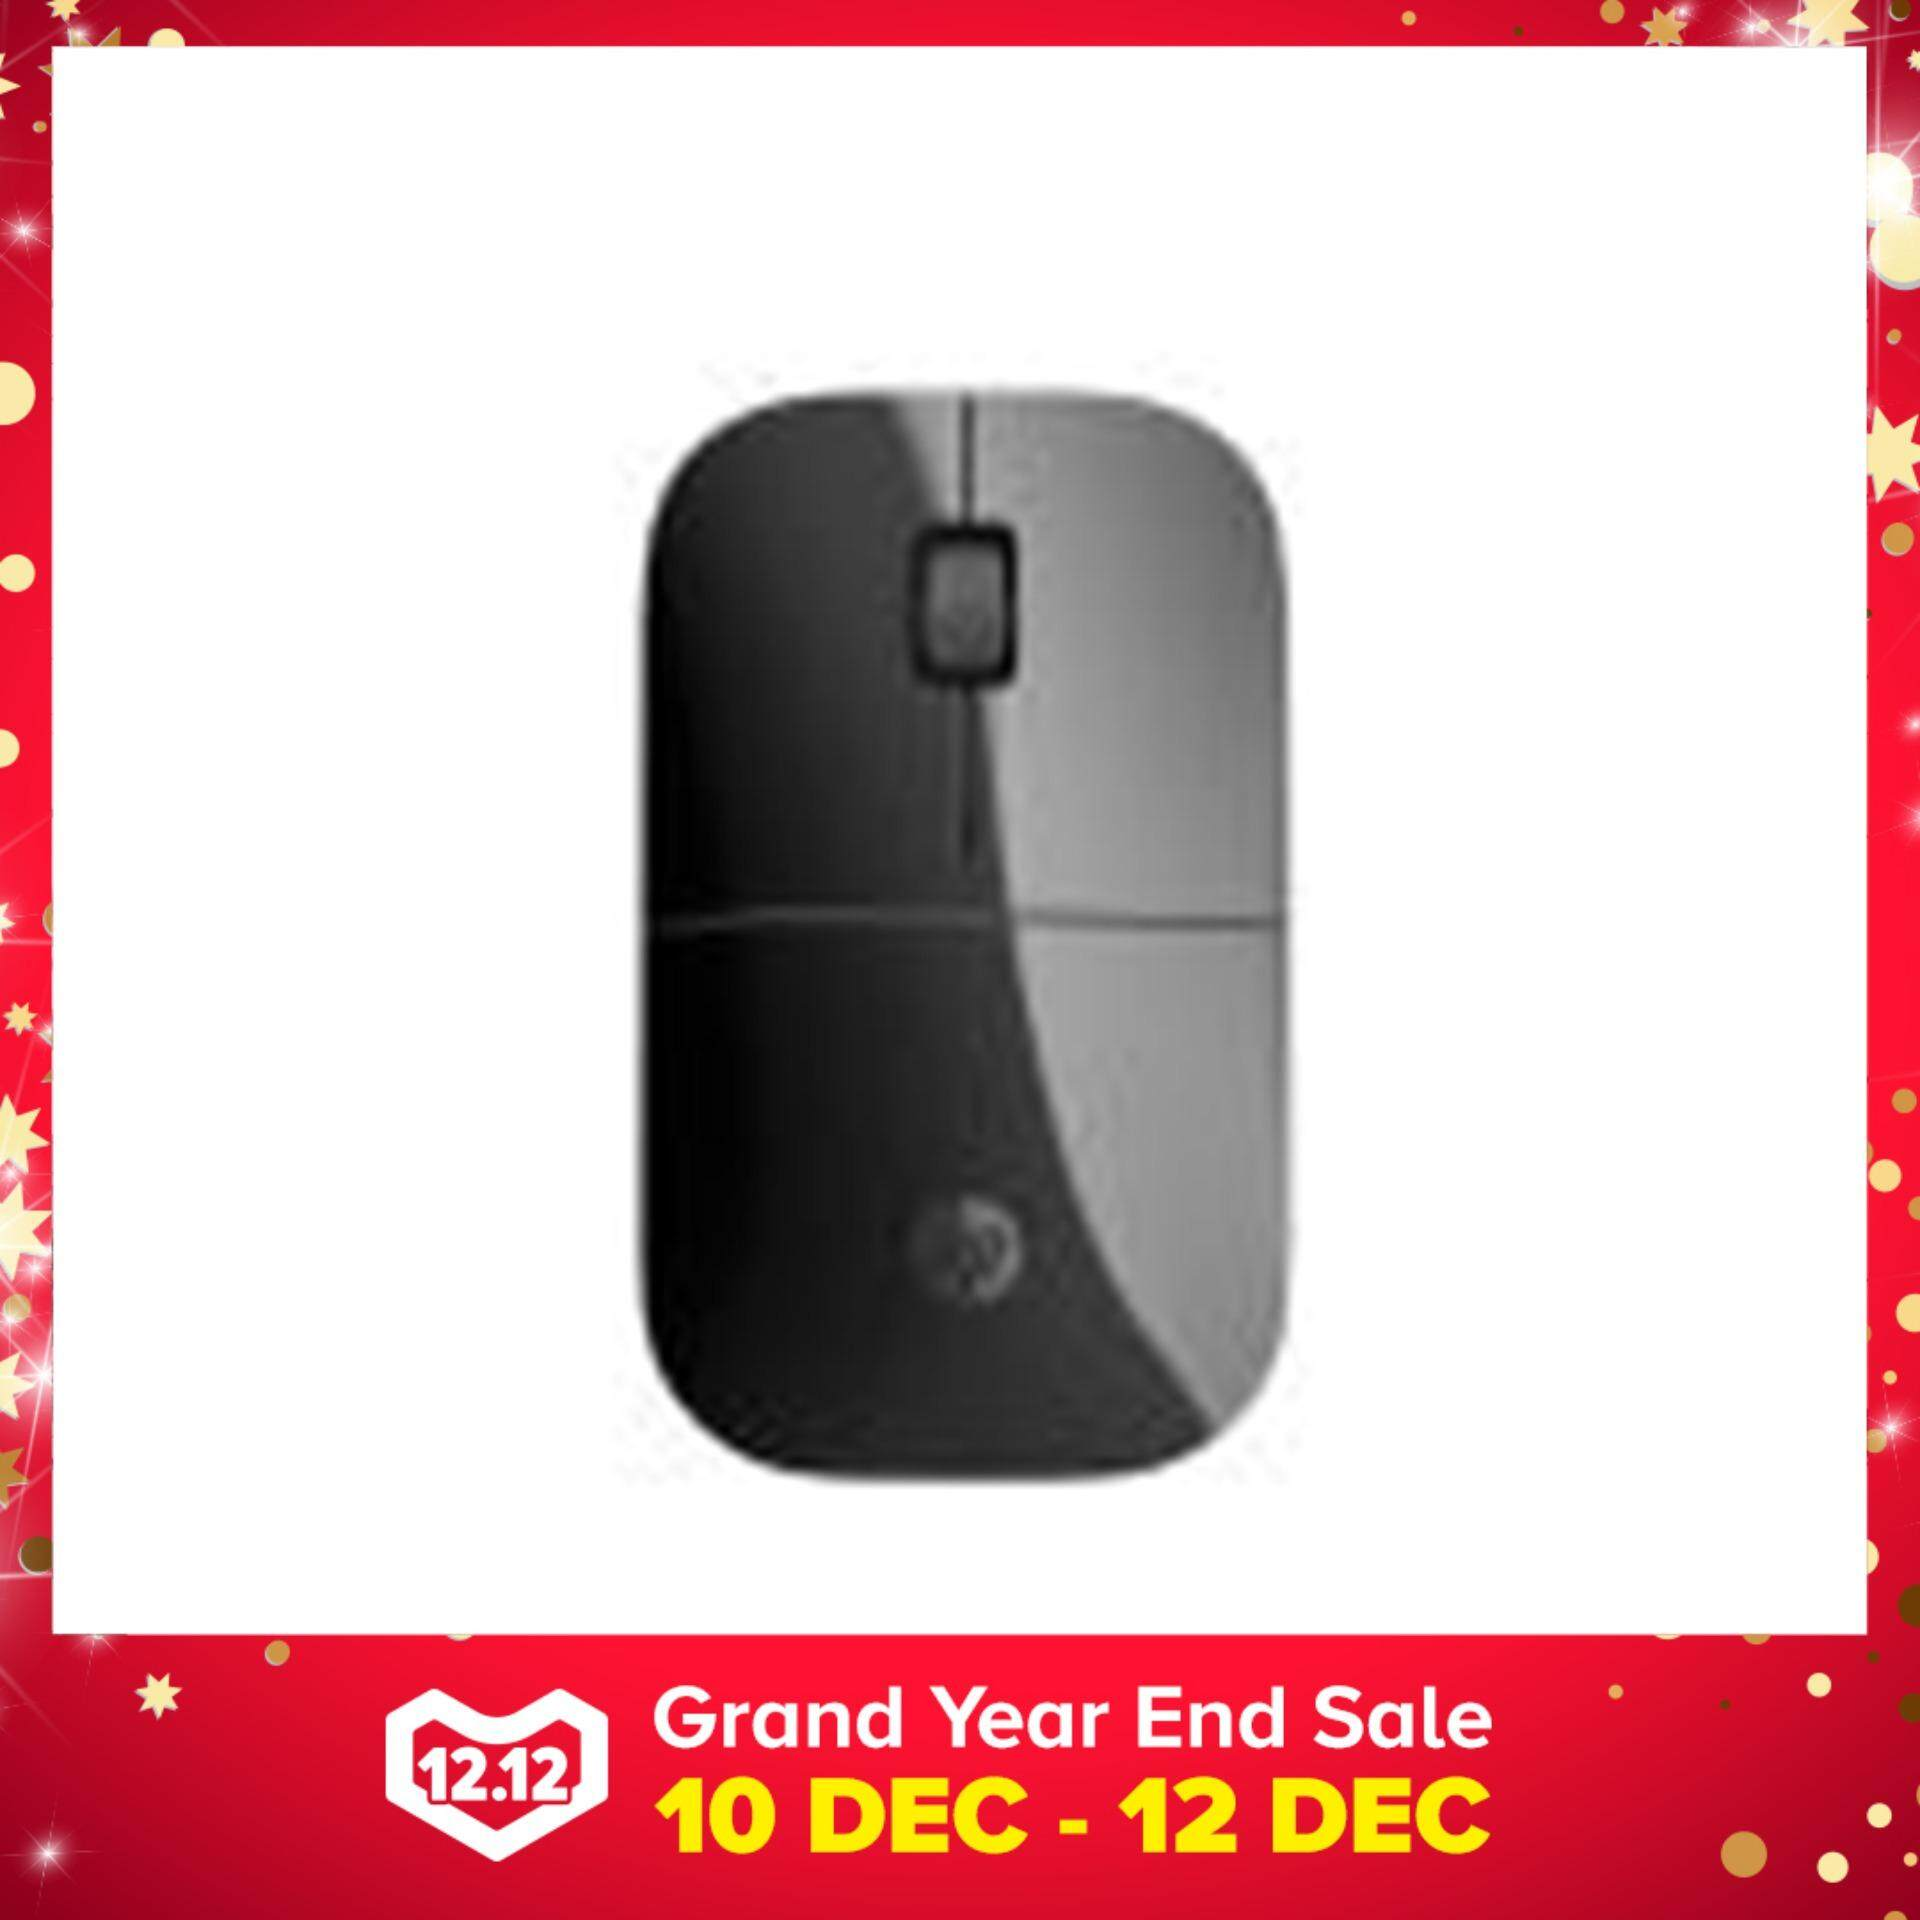 HP Z3700 Wireless Mouse - Black (V0L79AA#UUF) Malaysia